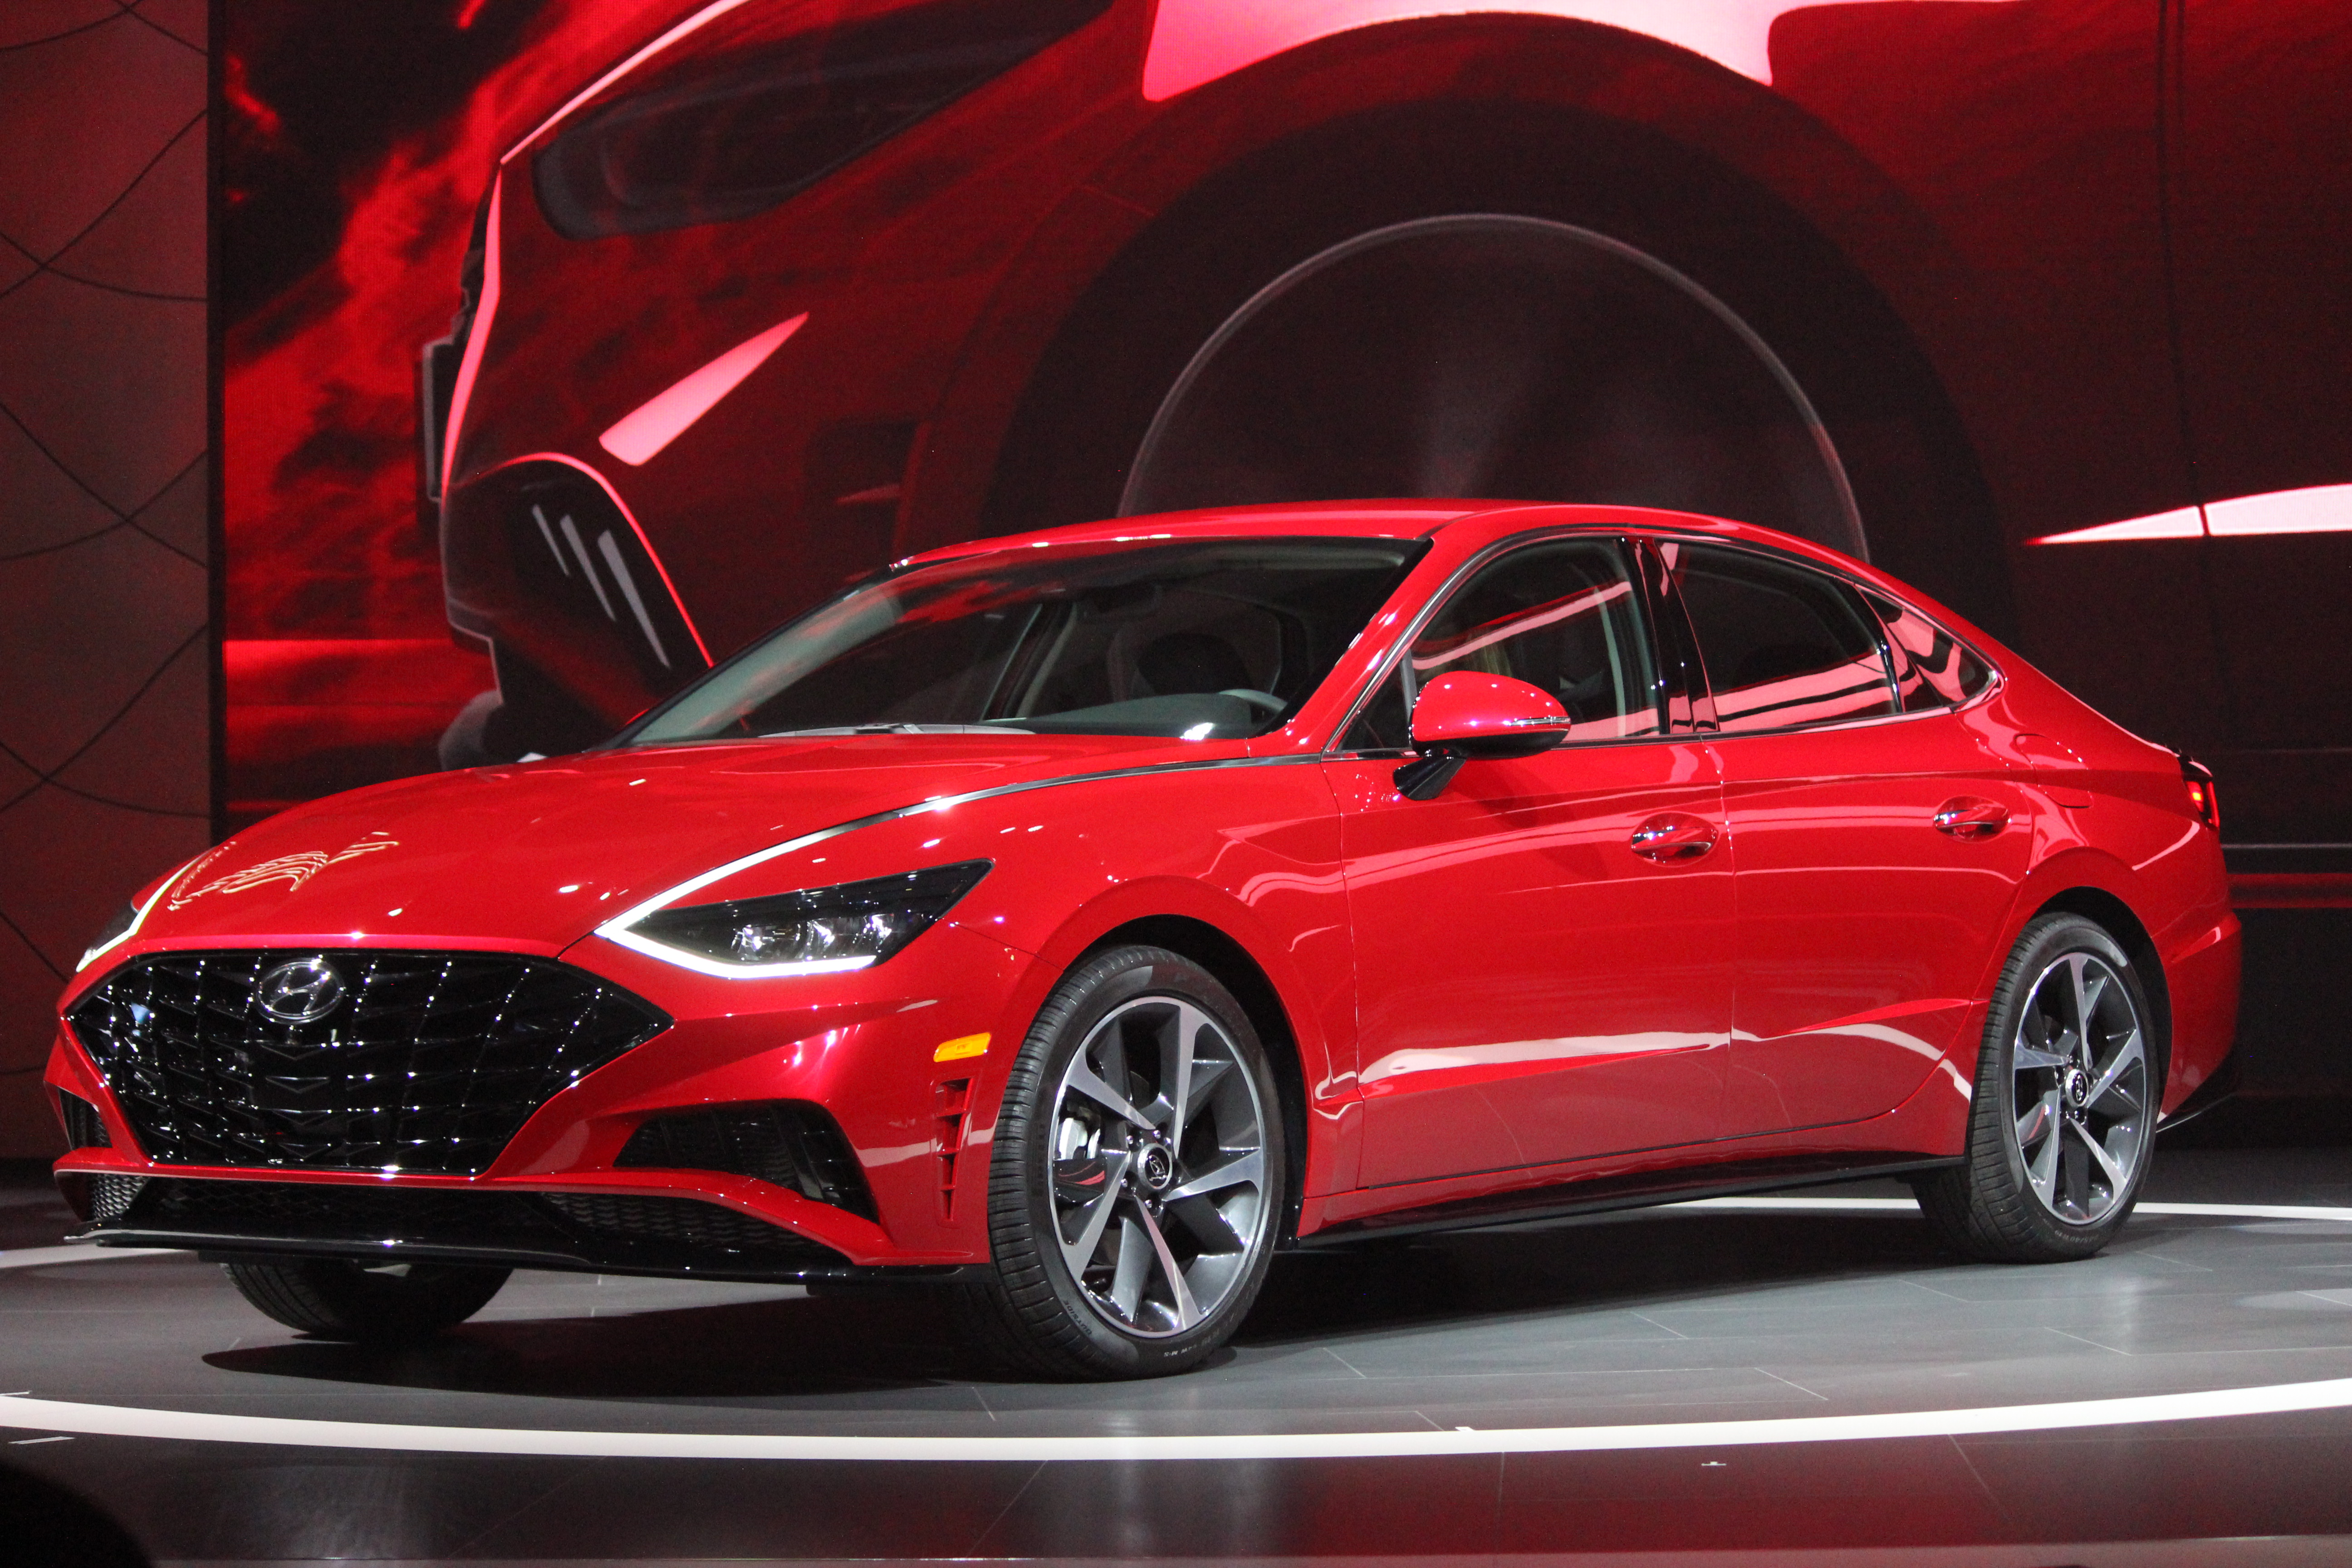 New York International Auto Show 2020.Best Of The 2019 New York International Auto Show Wheels Ca